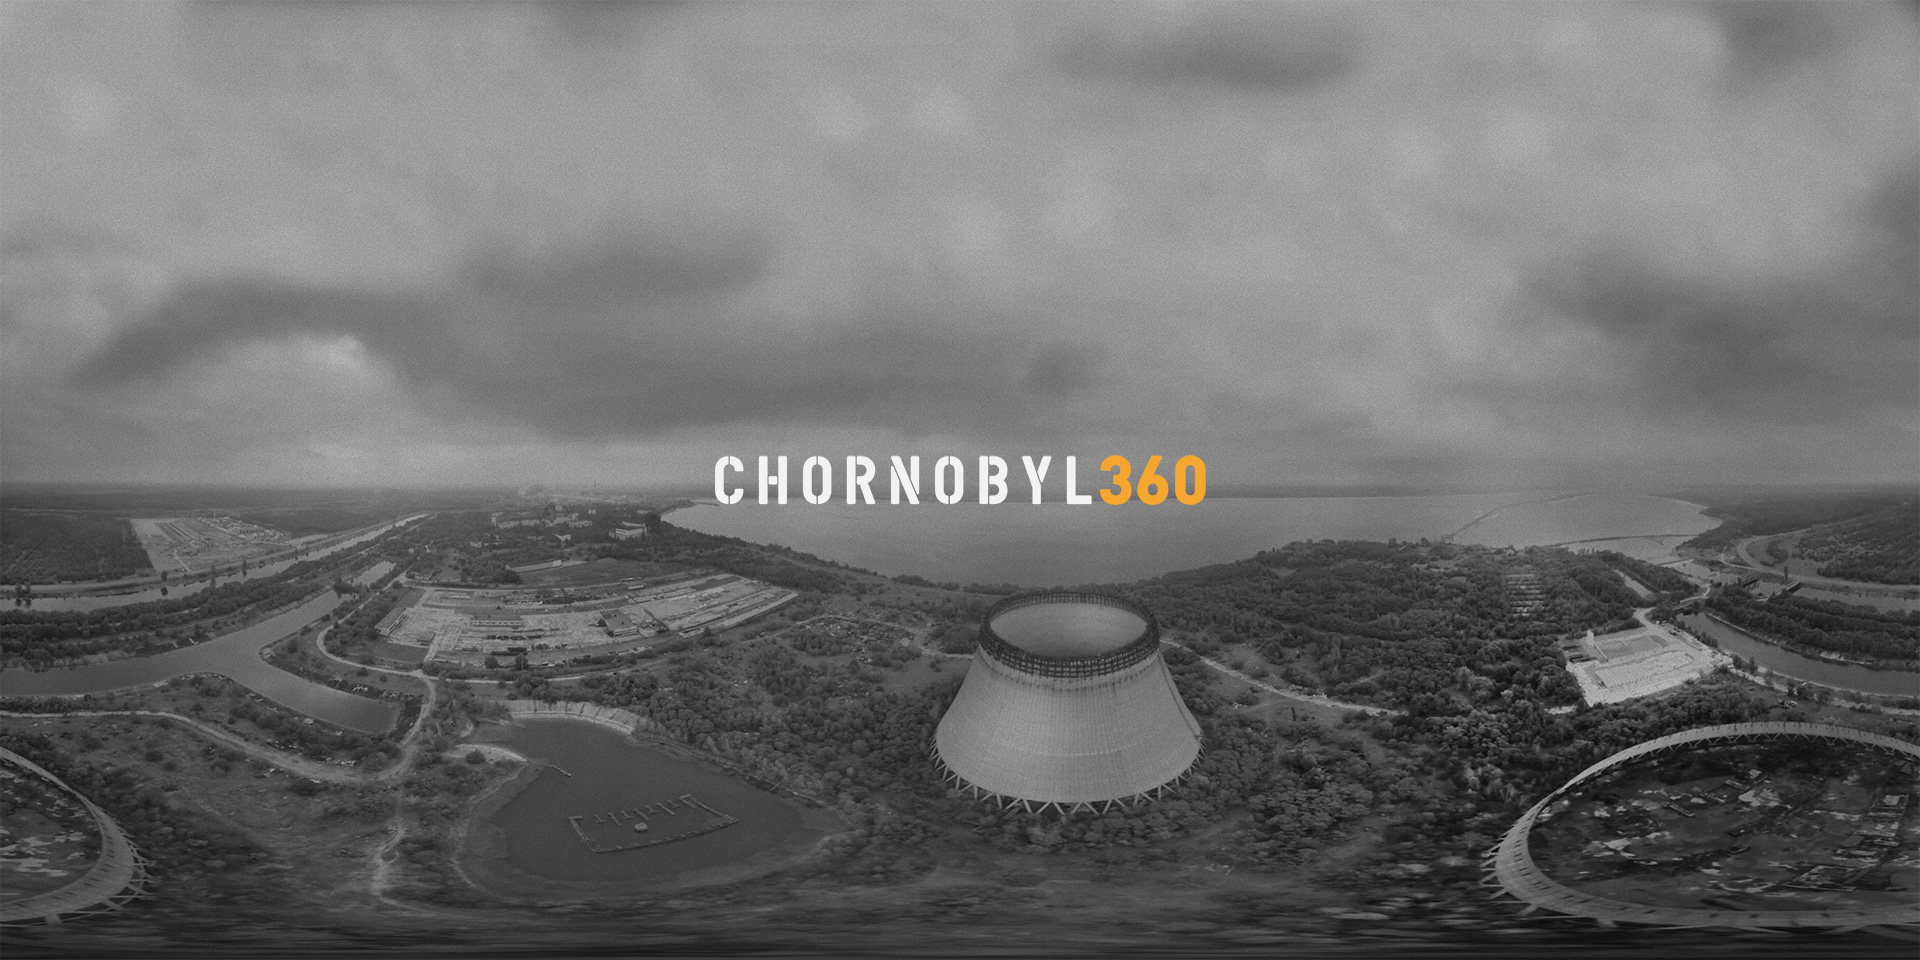 panorama of chornobyl